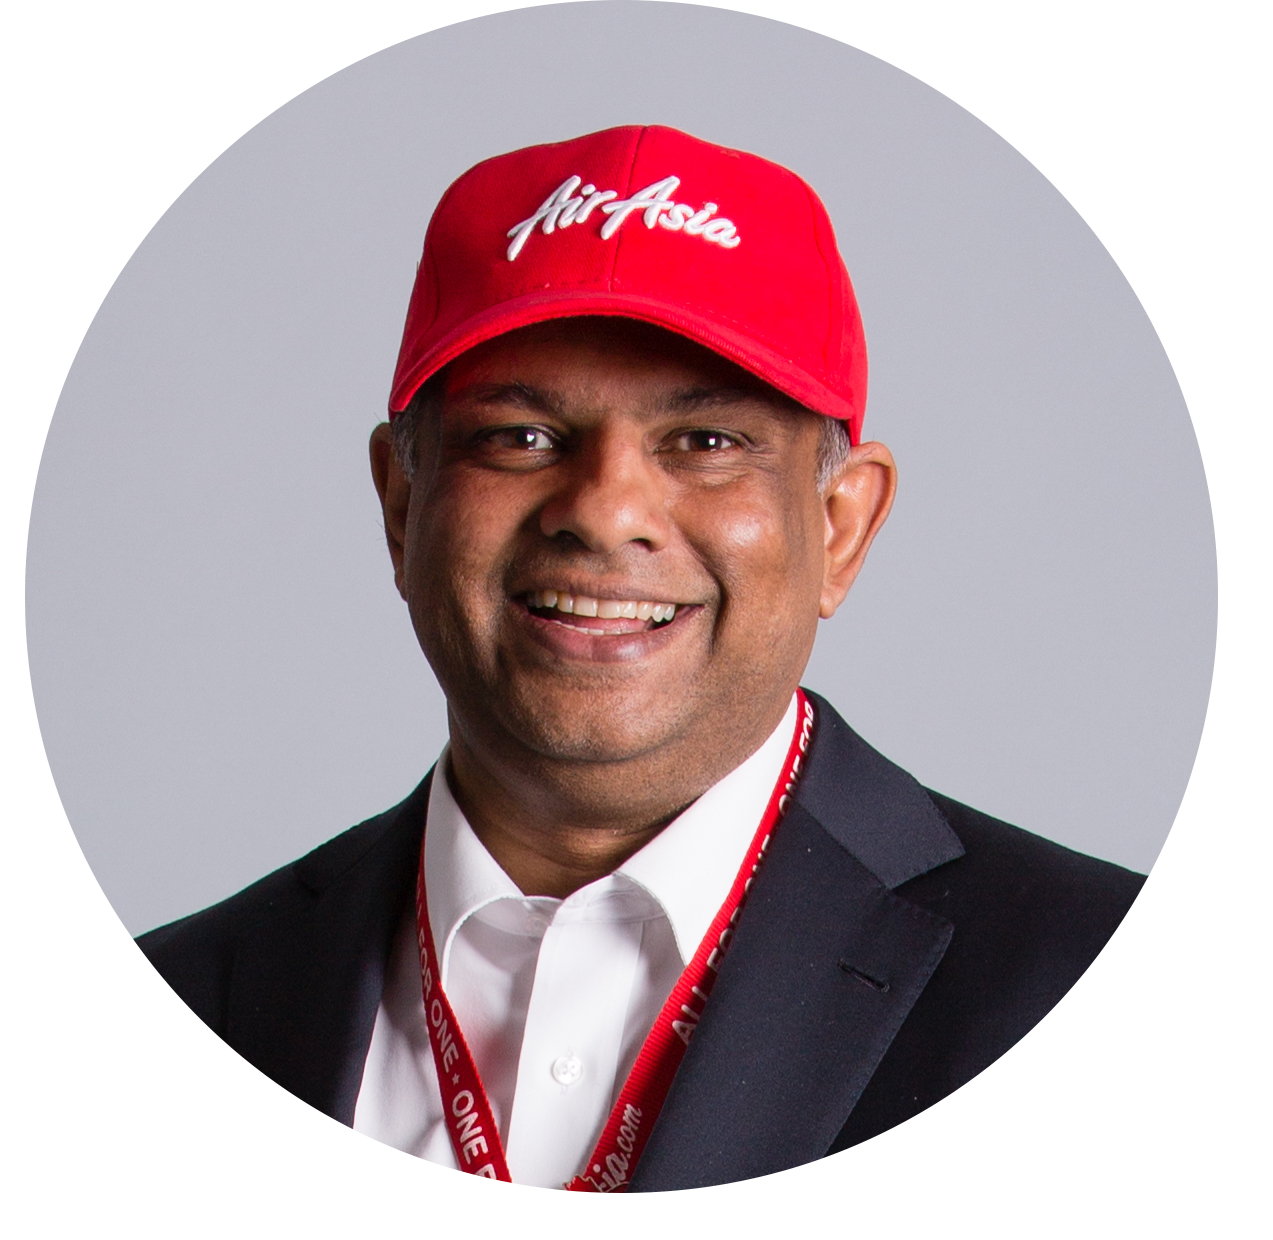 TONY FERNANDES Group CEO at AirAsia